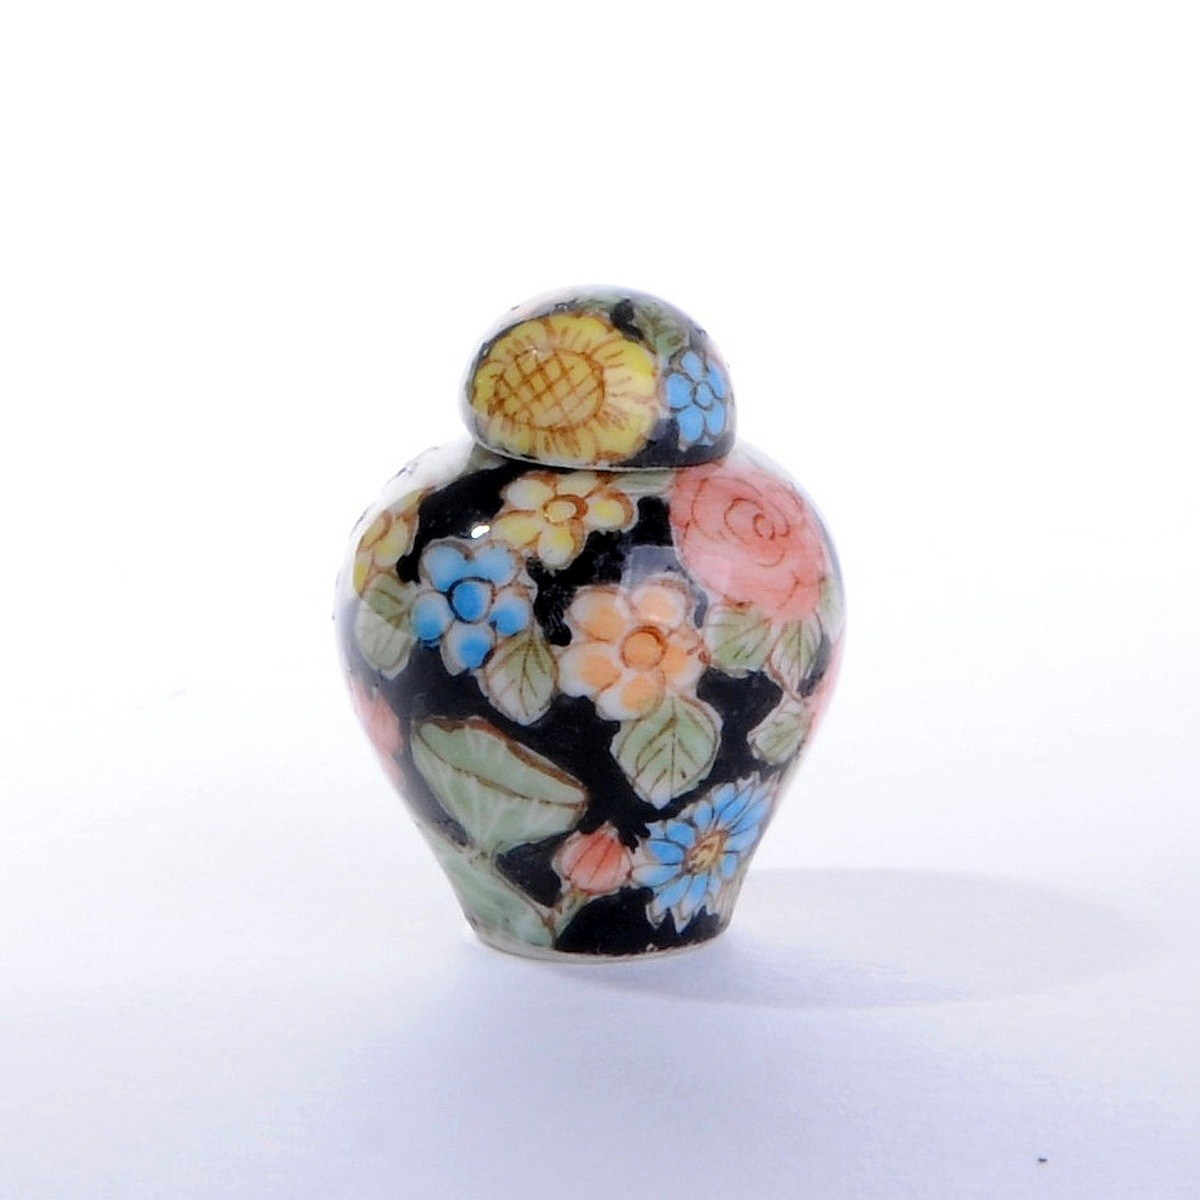 Small covered vase